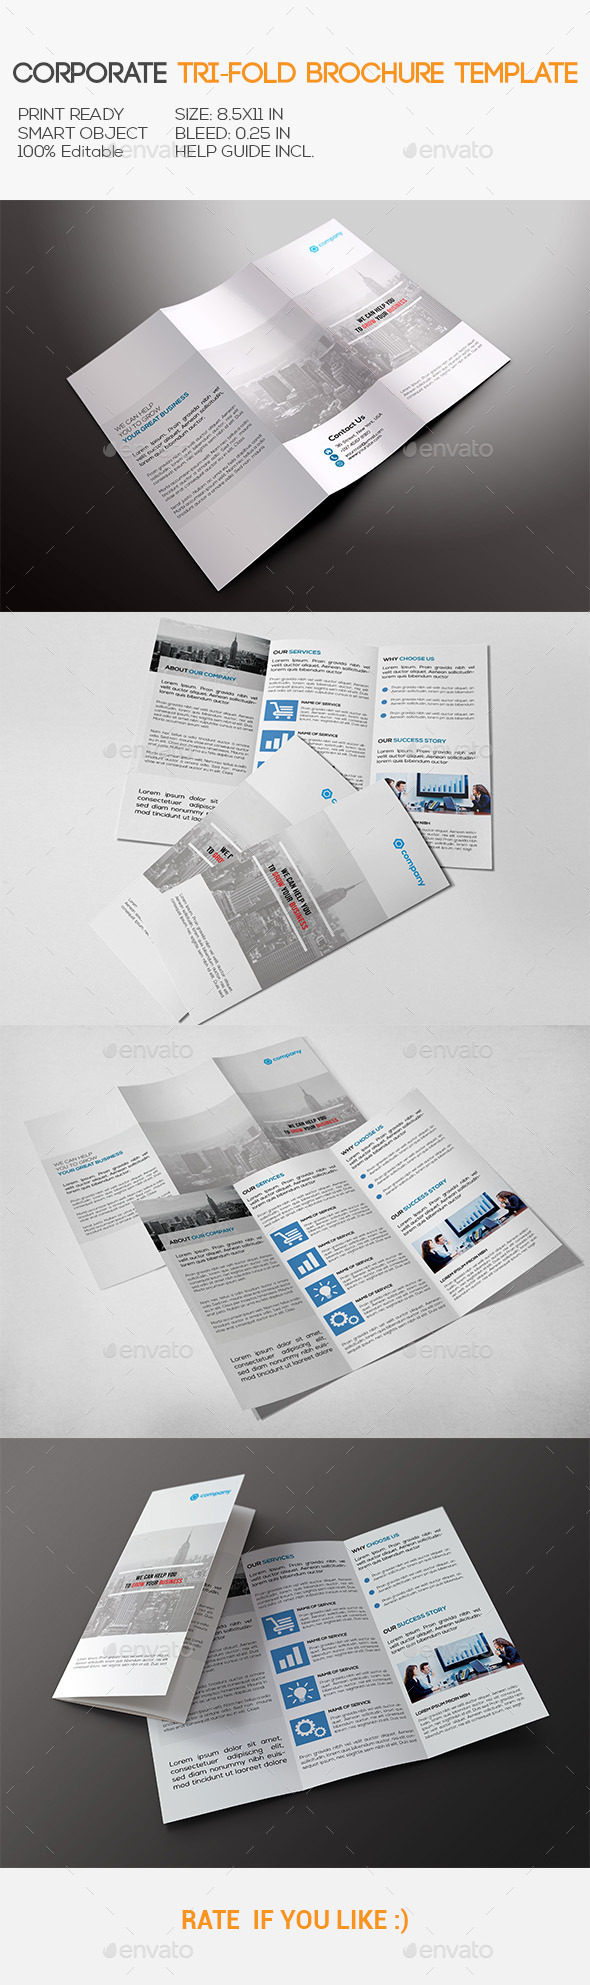 GraphicRiver Corporate Tri-Fold Brochure 11017715